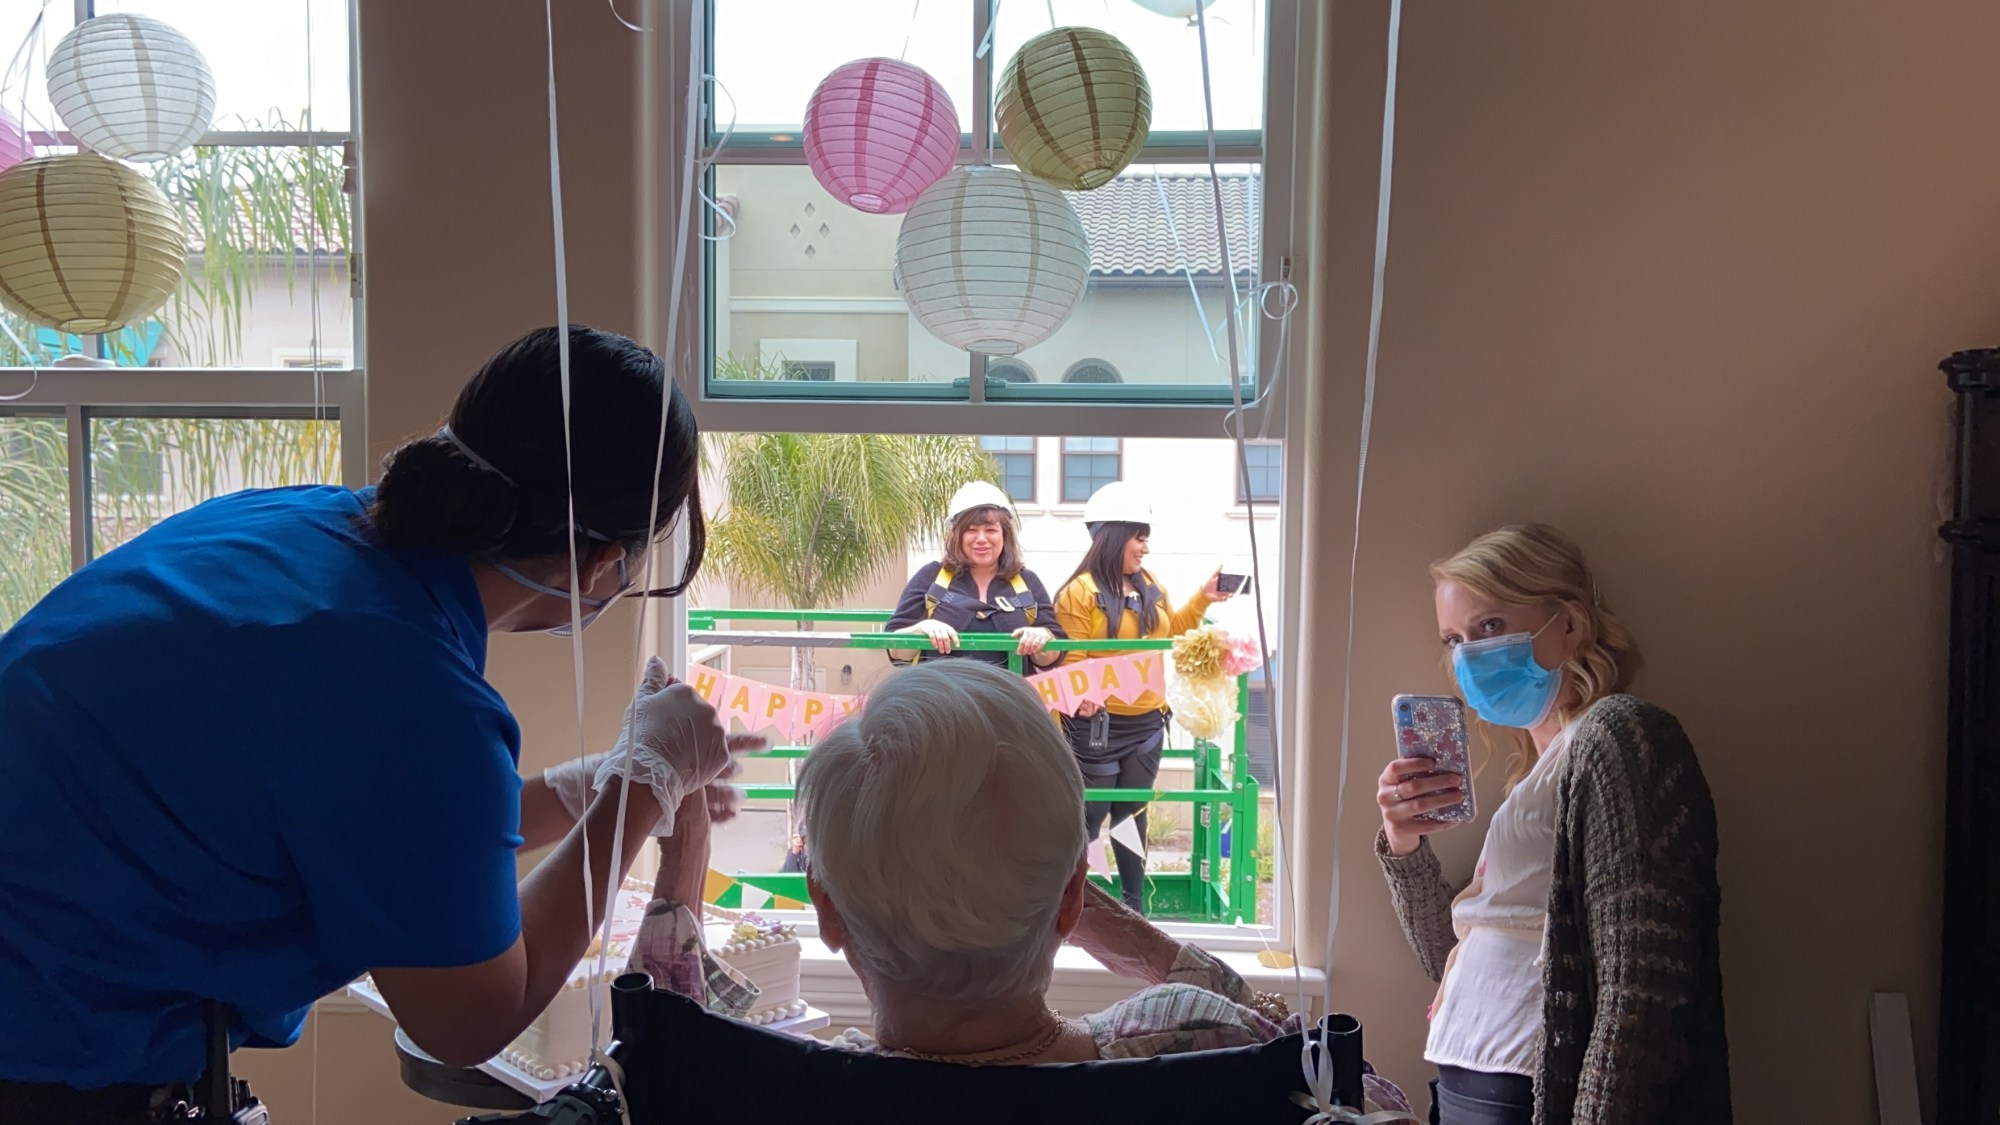 Lucy and Amber Cavazos visit Margie Jones on her 91st birthday at The Kensington Redondo Beach, on April 7, 2020. (The Kensington Redondo Beach)